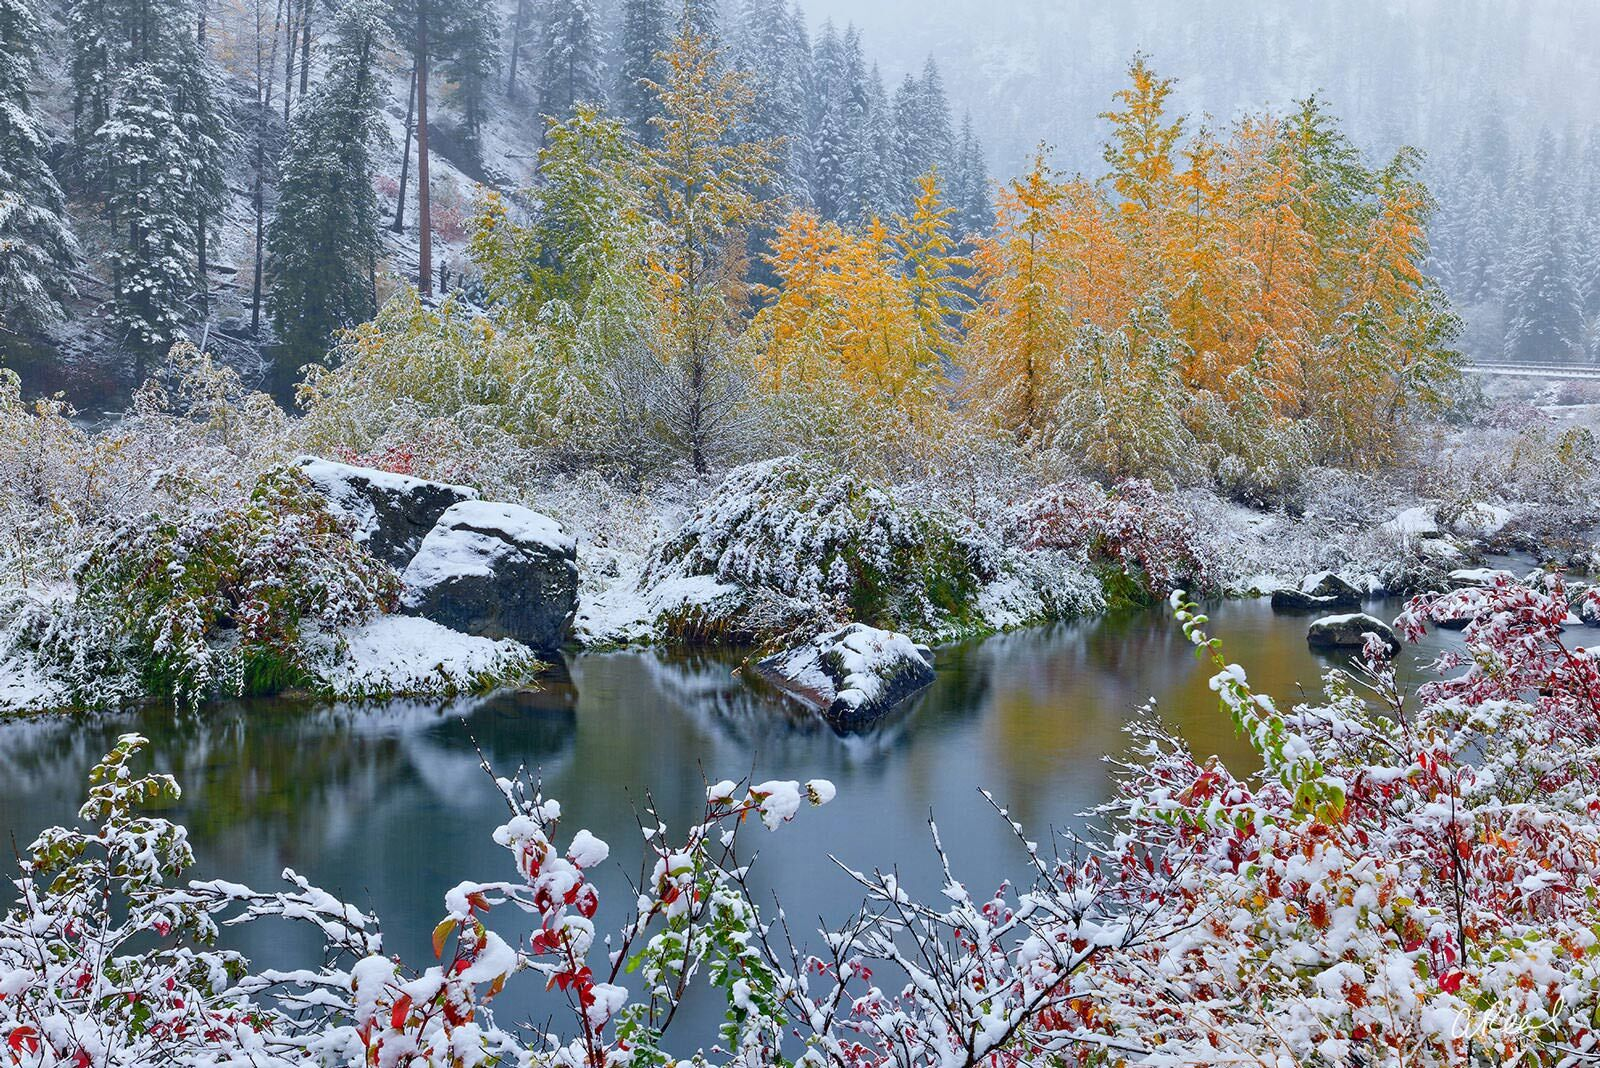 Adorn your walls with Aaron Reed's limited edition photography print, Stillwater Snow, from his Oceans & Rivers Luxury Art collection...